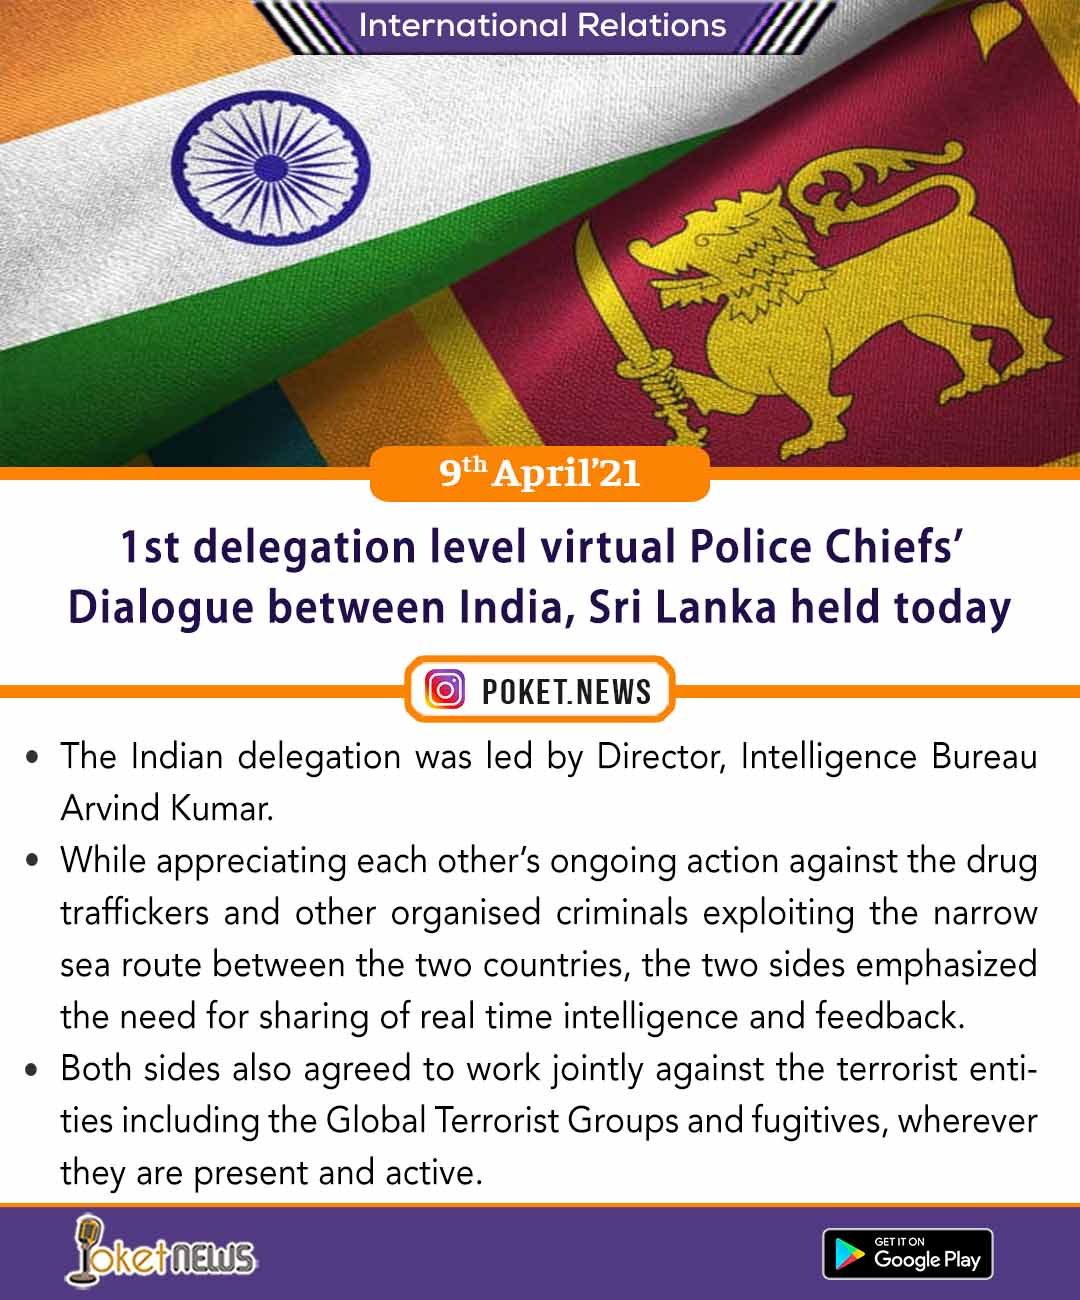 1st delegation level virtual Police Chiefs' Dialogue between India, Sri Lanka held today